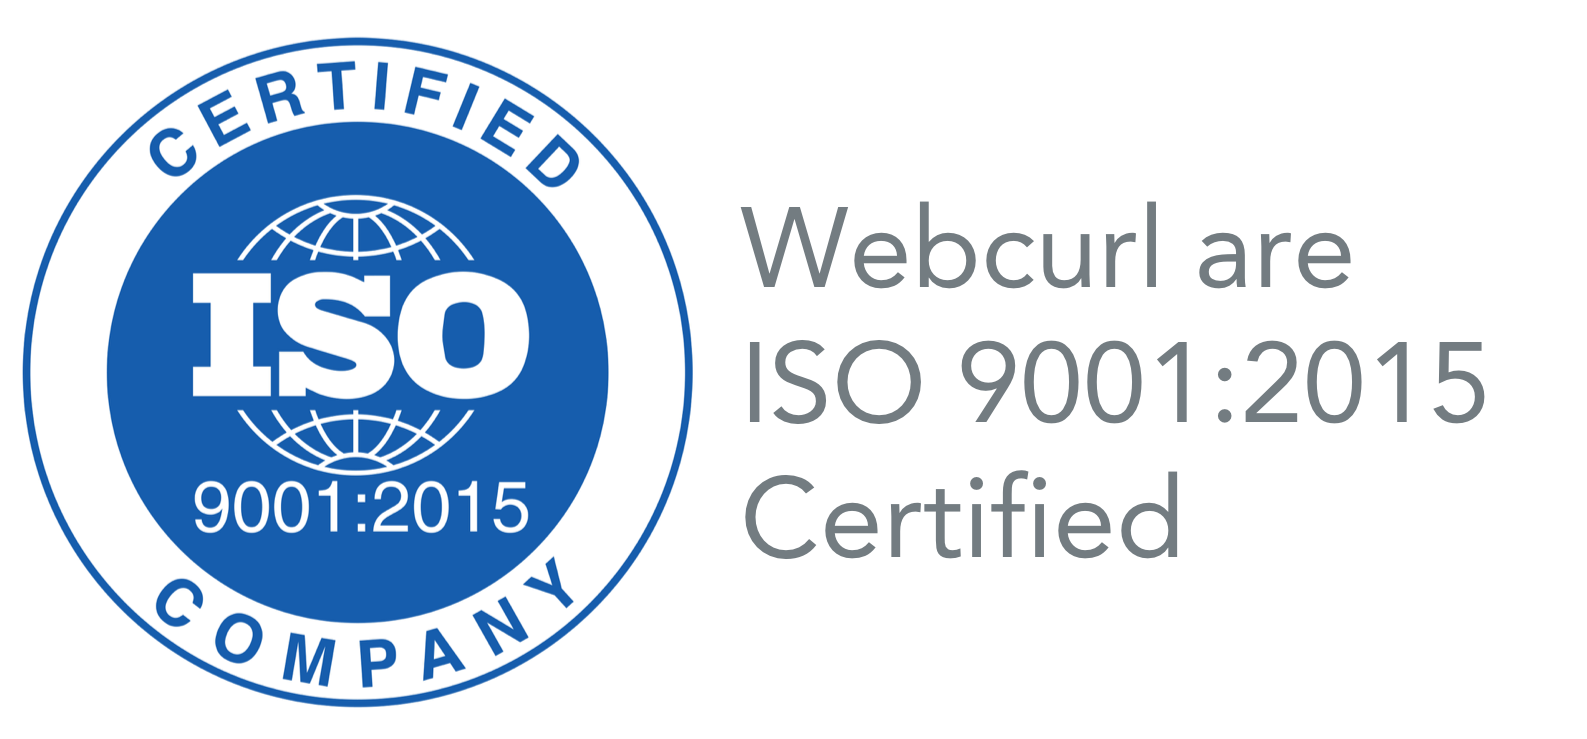 Webcurl ISO 9001:2015 Certified